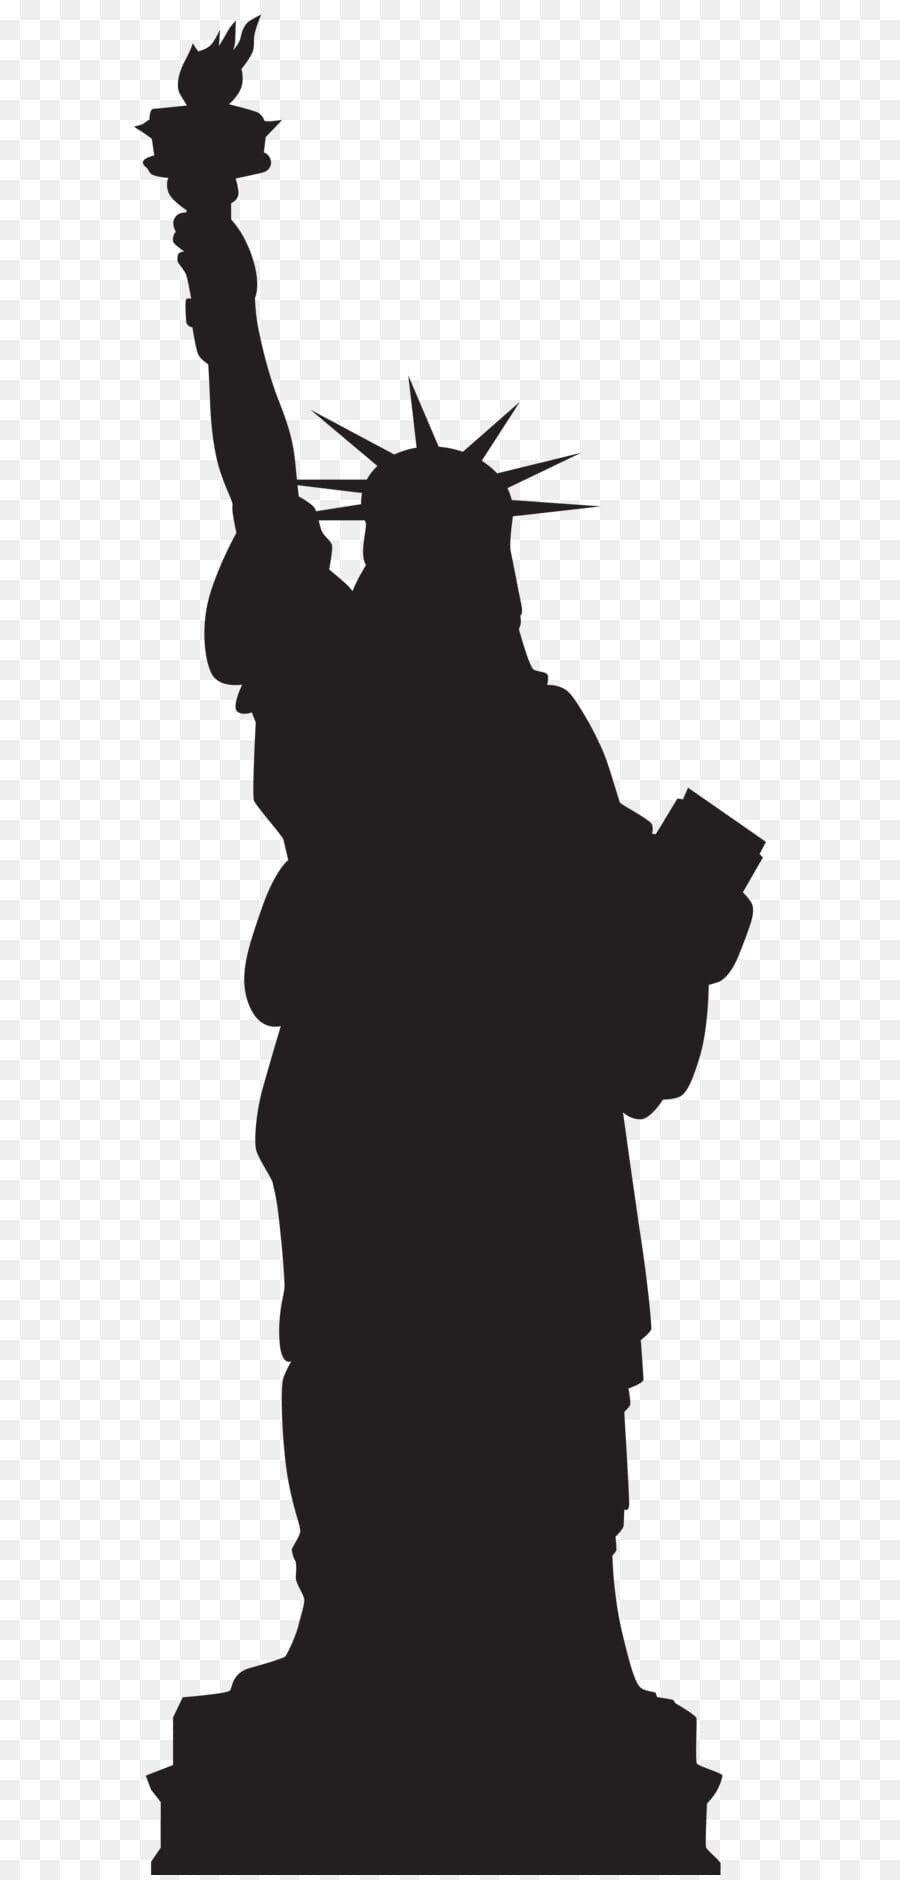 statue-of-liberty-silhouette-transparent-png-clip-art-image-5a1c03213af1a4.1784535815117852492414.jpg